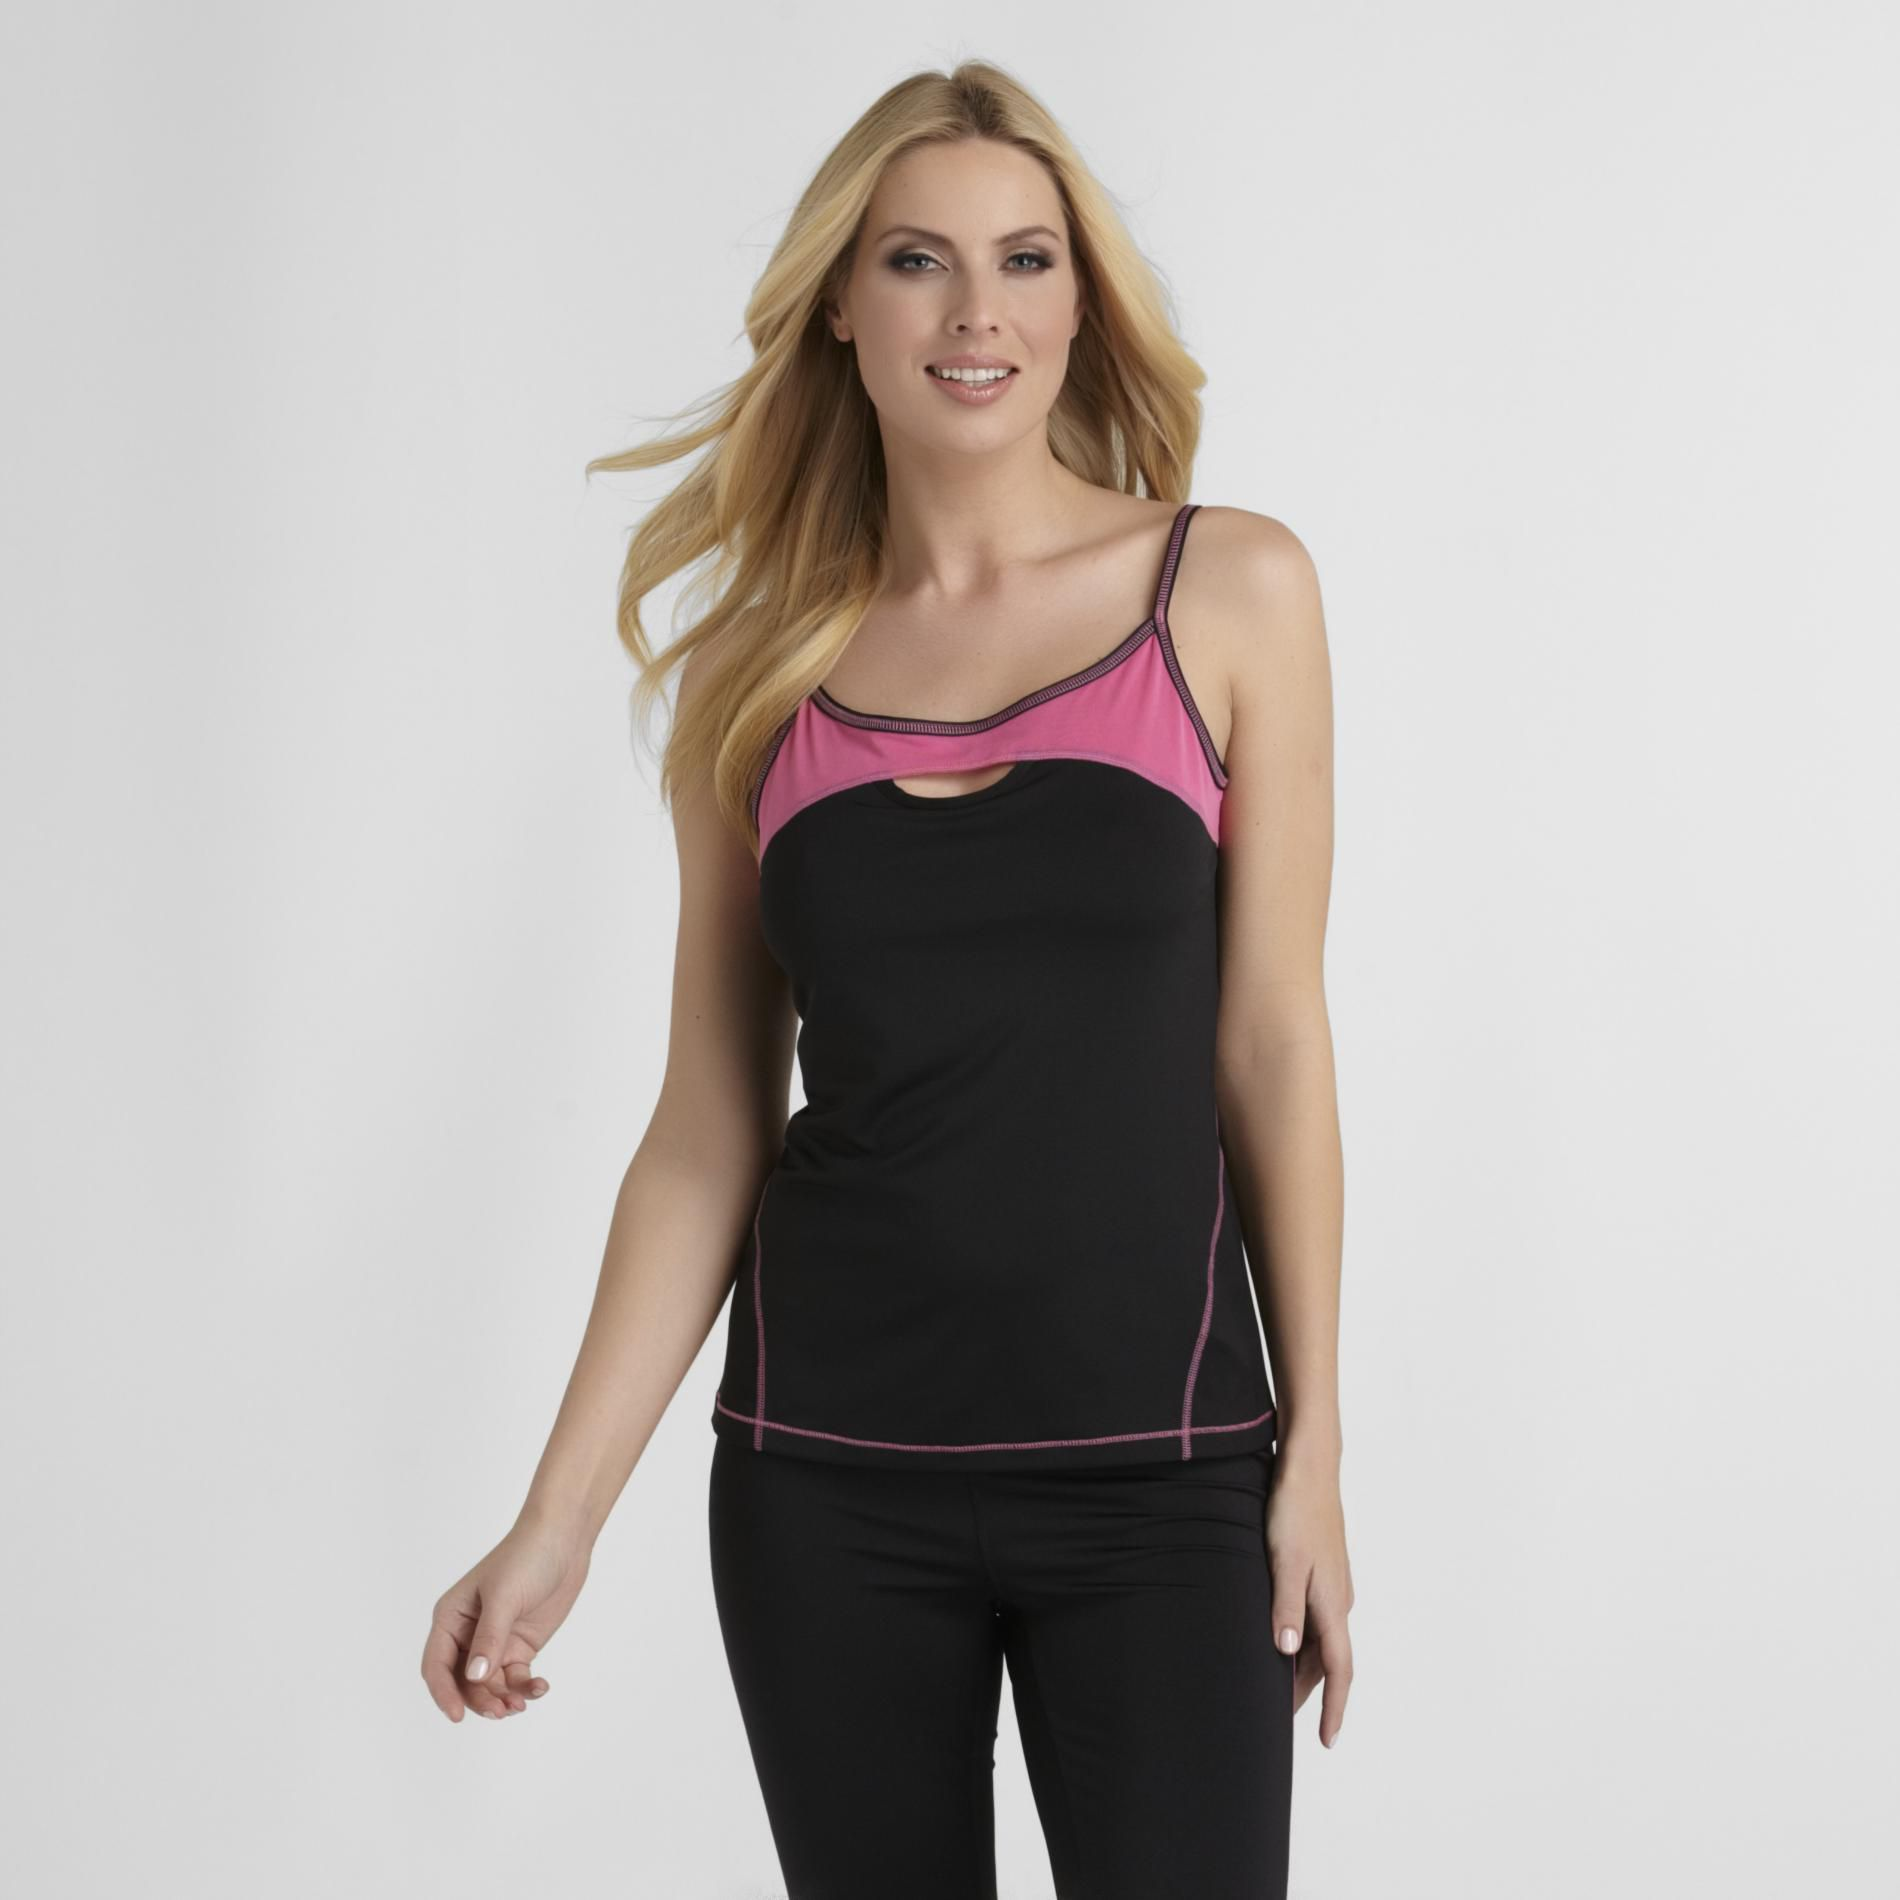 Women's Workout Top - Colorblock